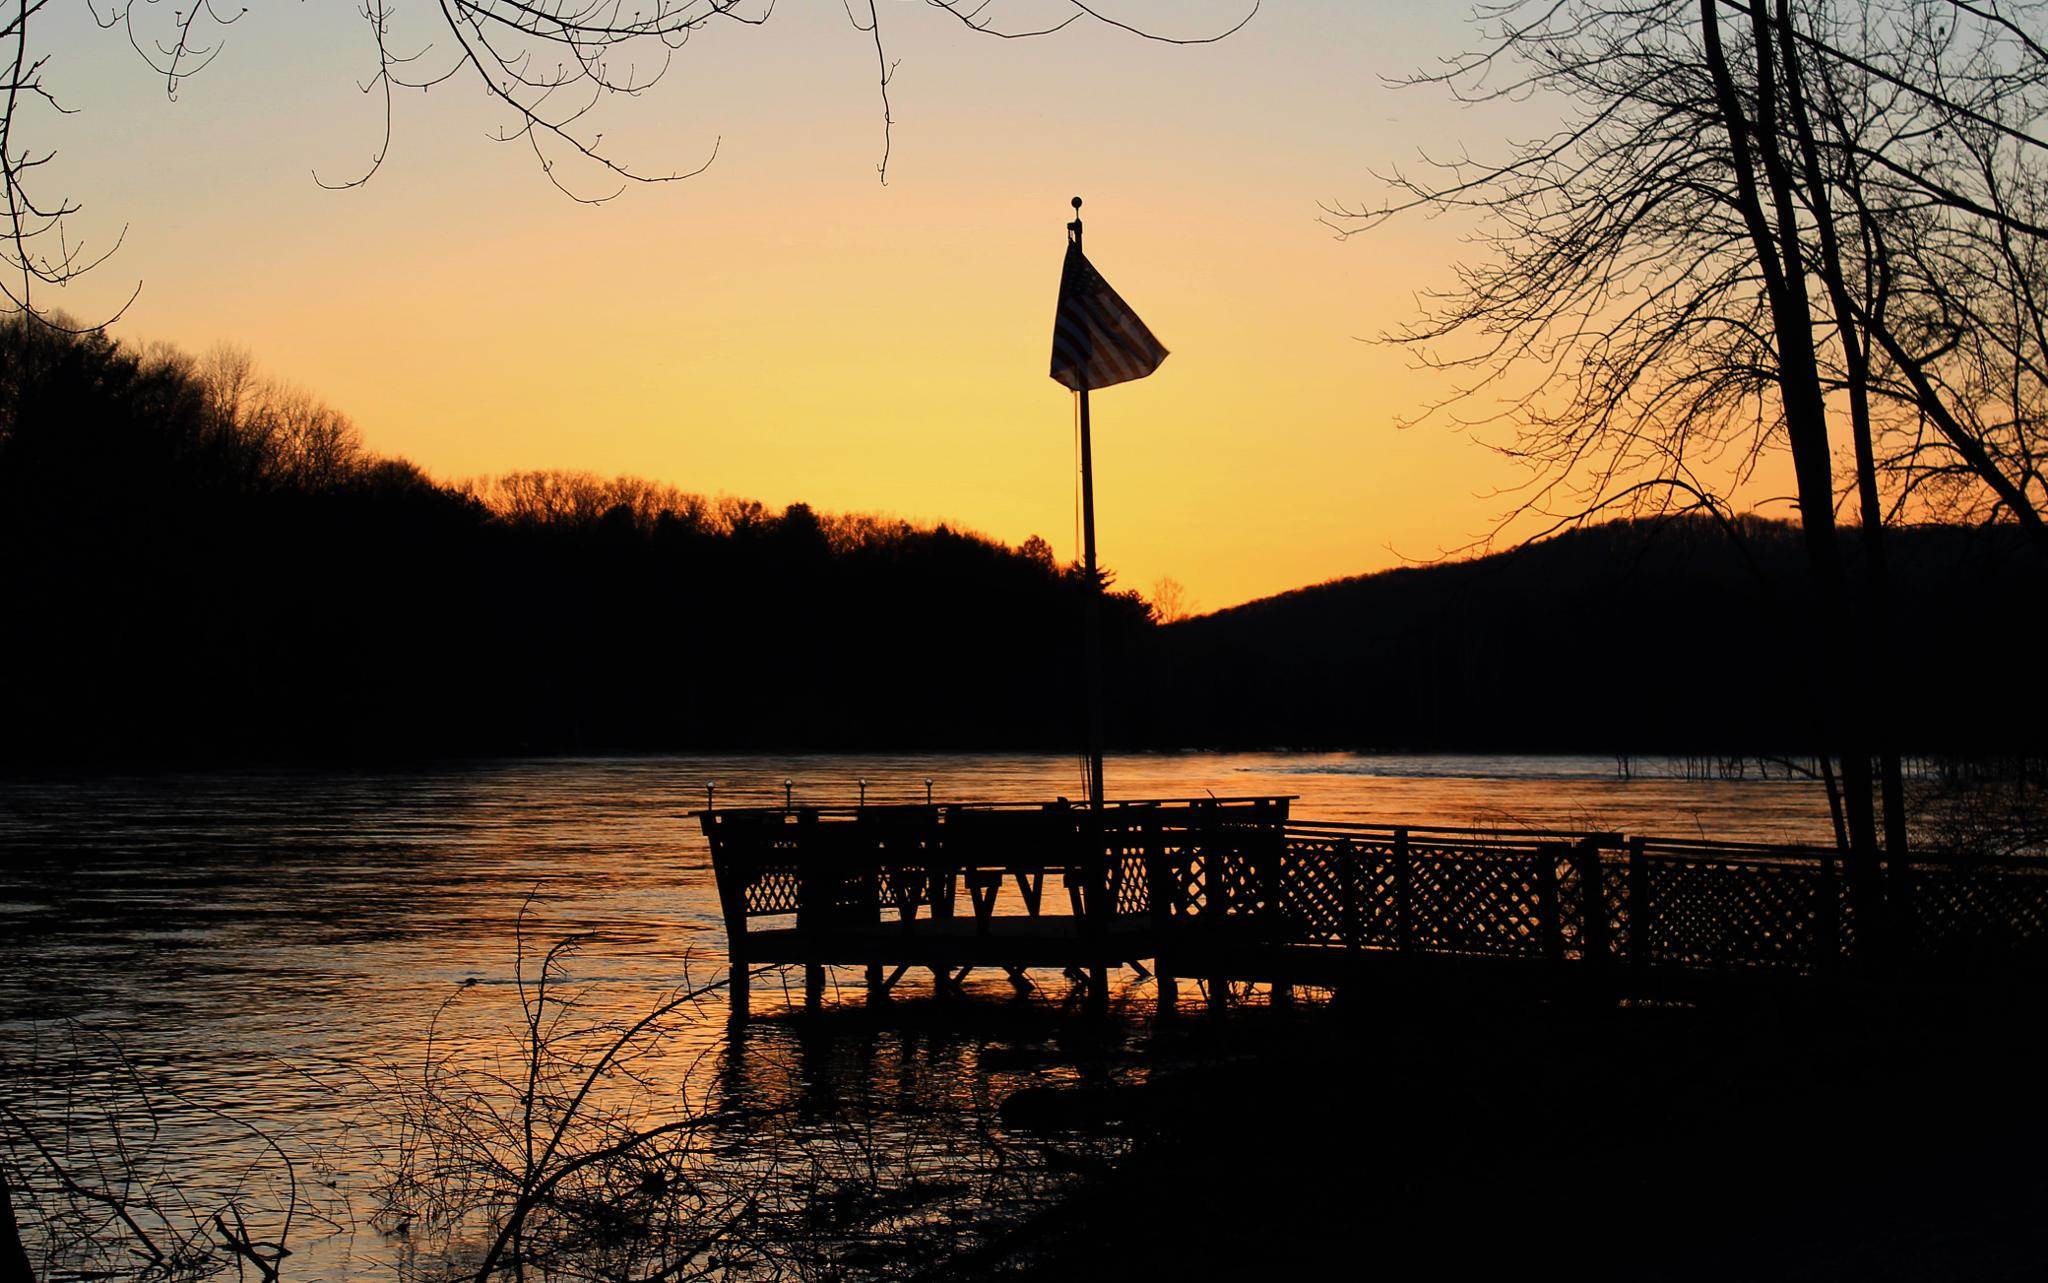 April Evening on the Allegheny by Auggie23